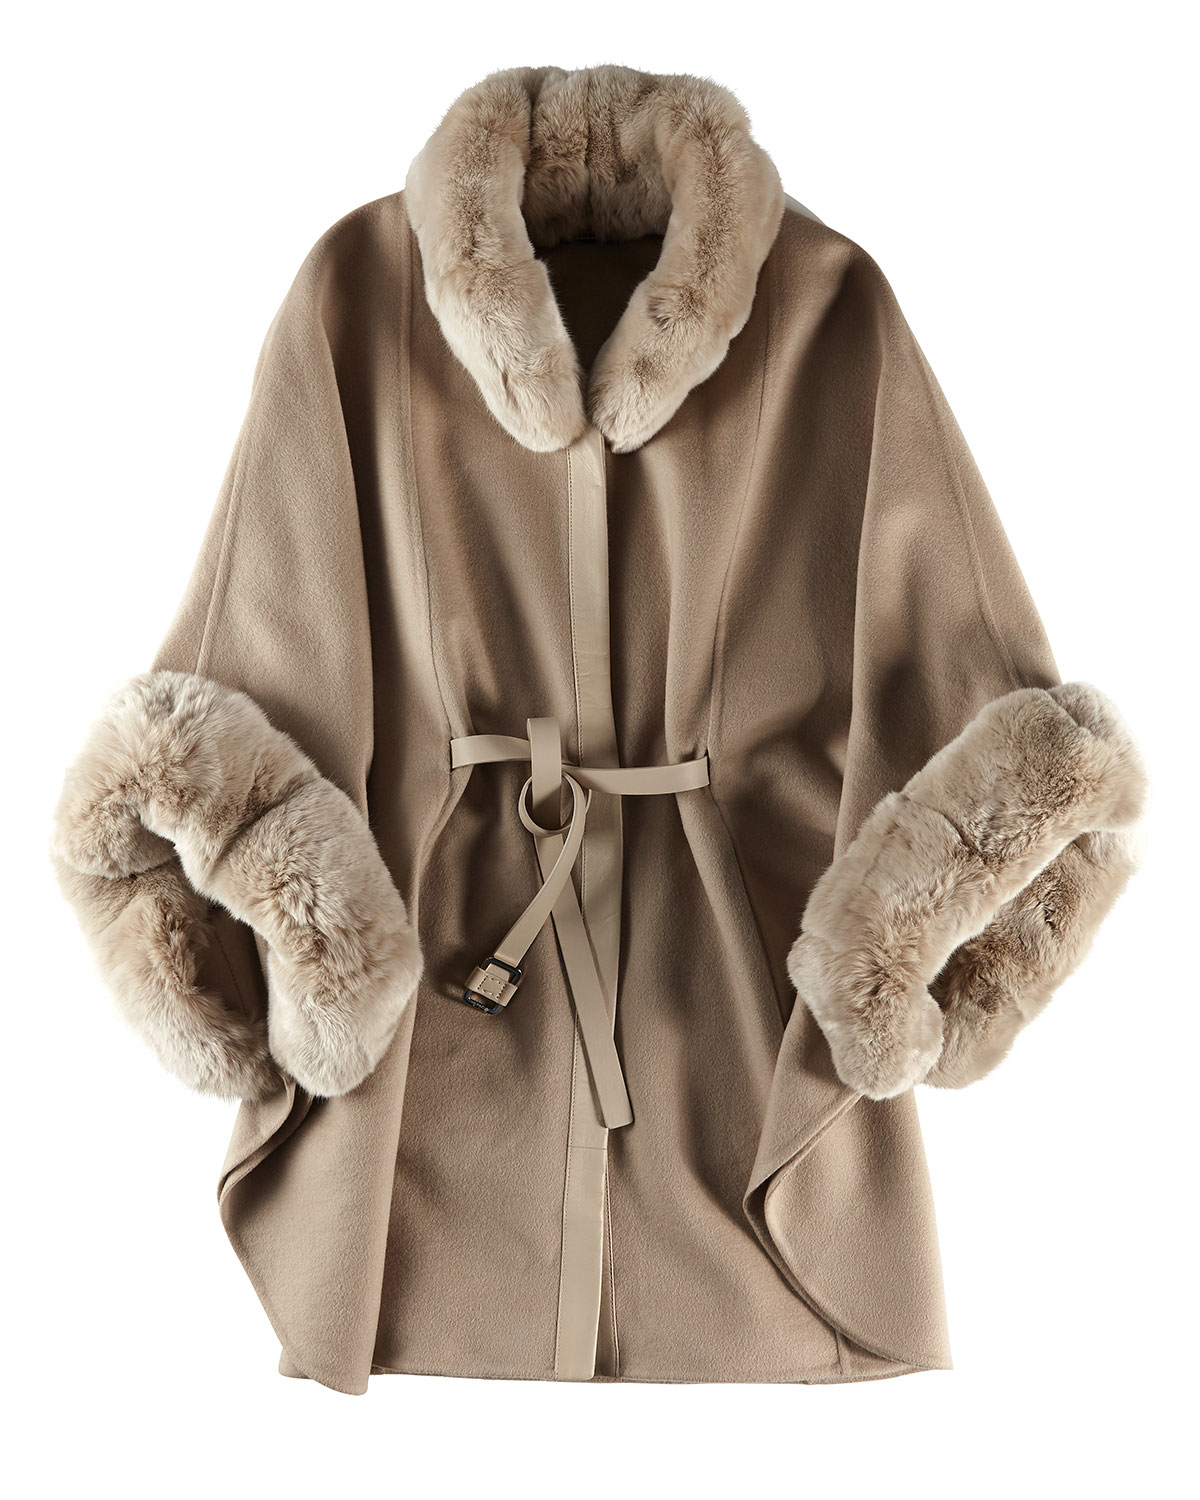 Cocoon Berlin Lyst - Loro Piana Audrey Fur-trim Cashmere Cape In Natural